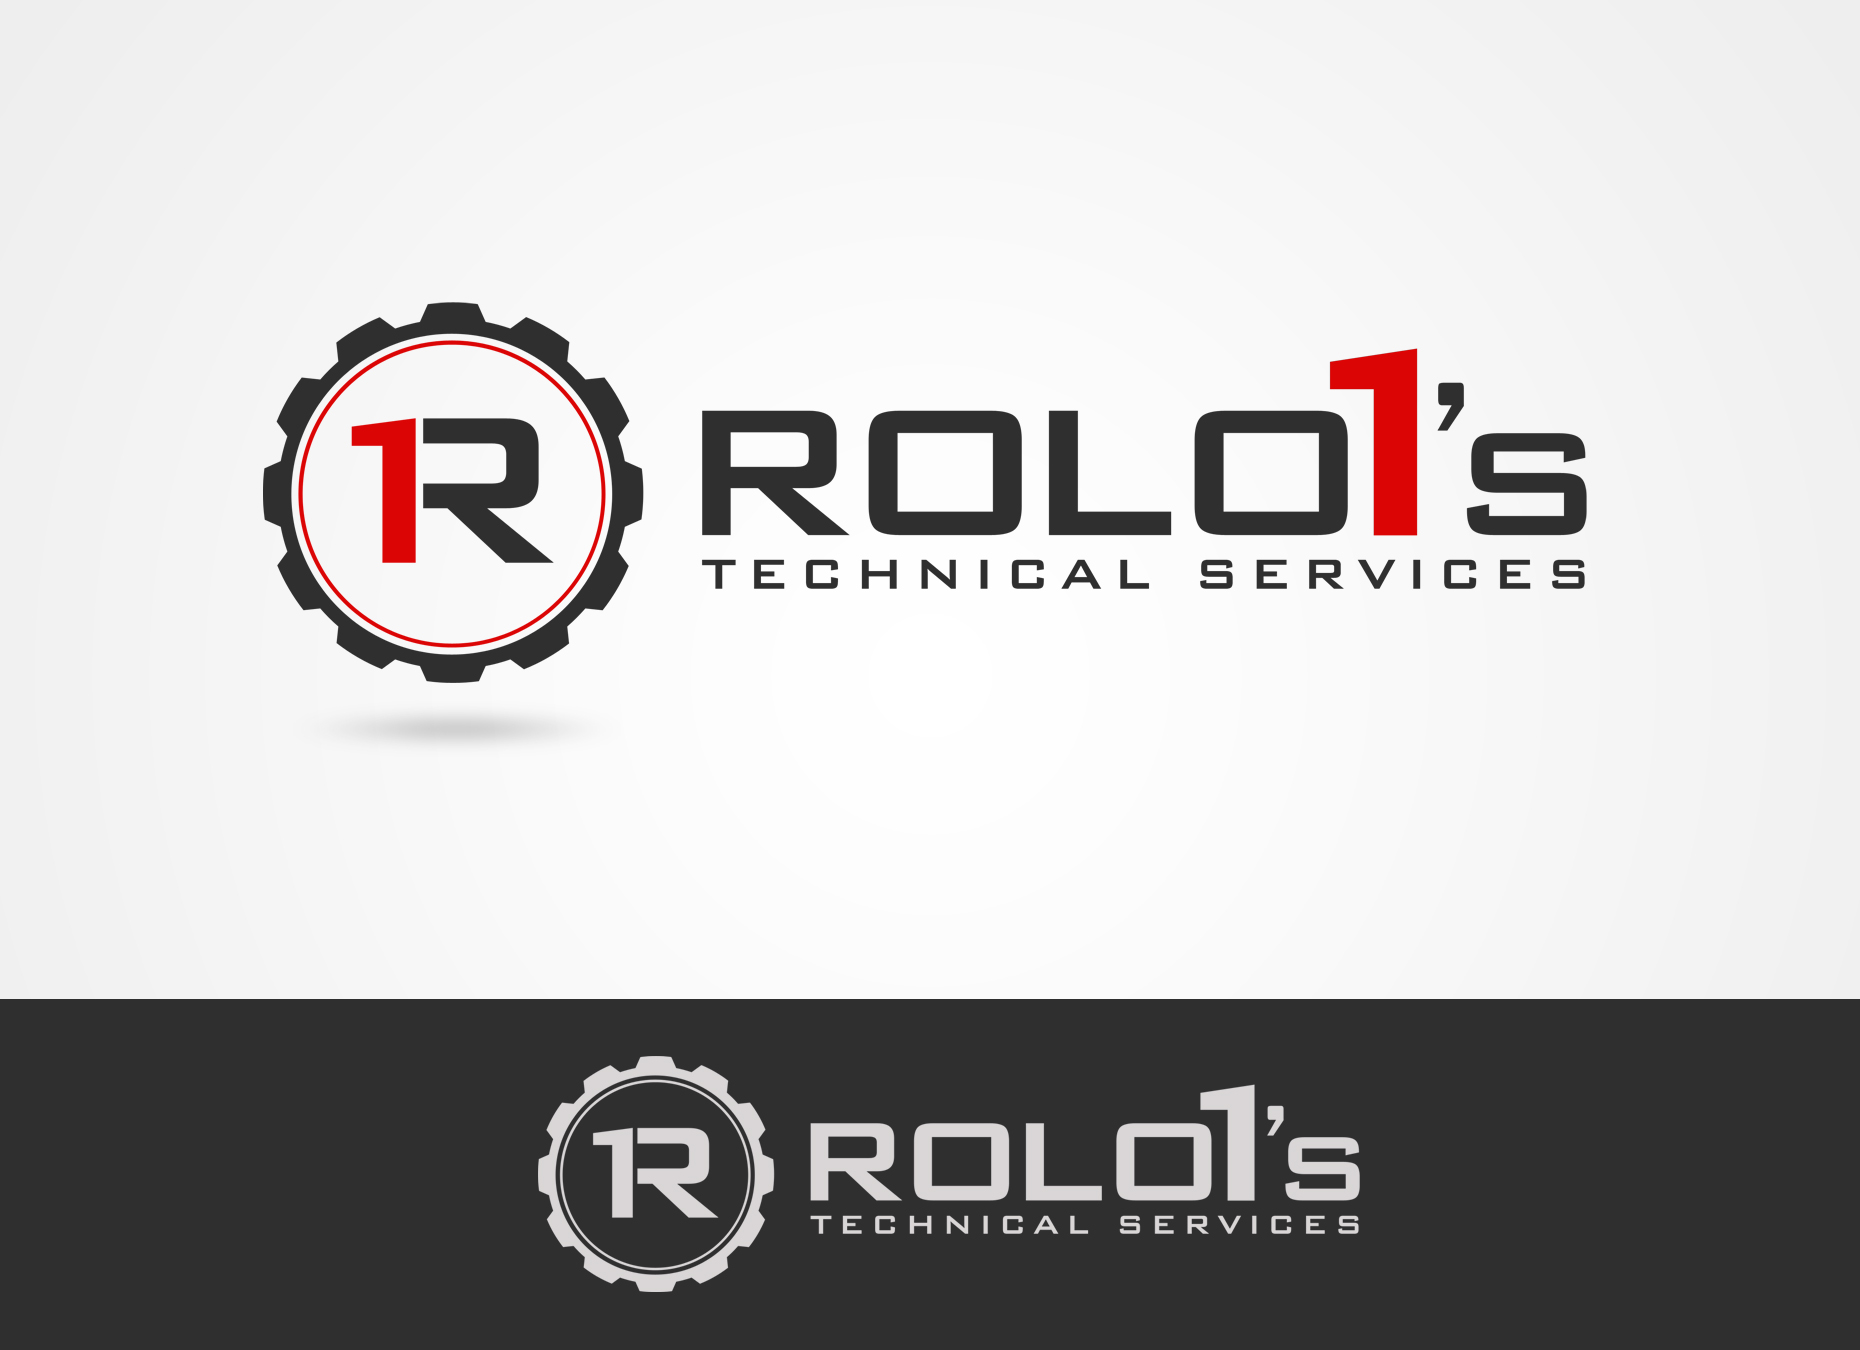 Logo Design by omARTist - Entry No. 55 in the Logo Design Contest Inspiring Logo Design for Rolo1's Technical Services.